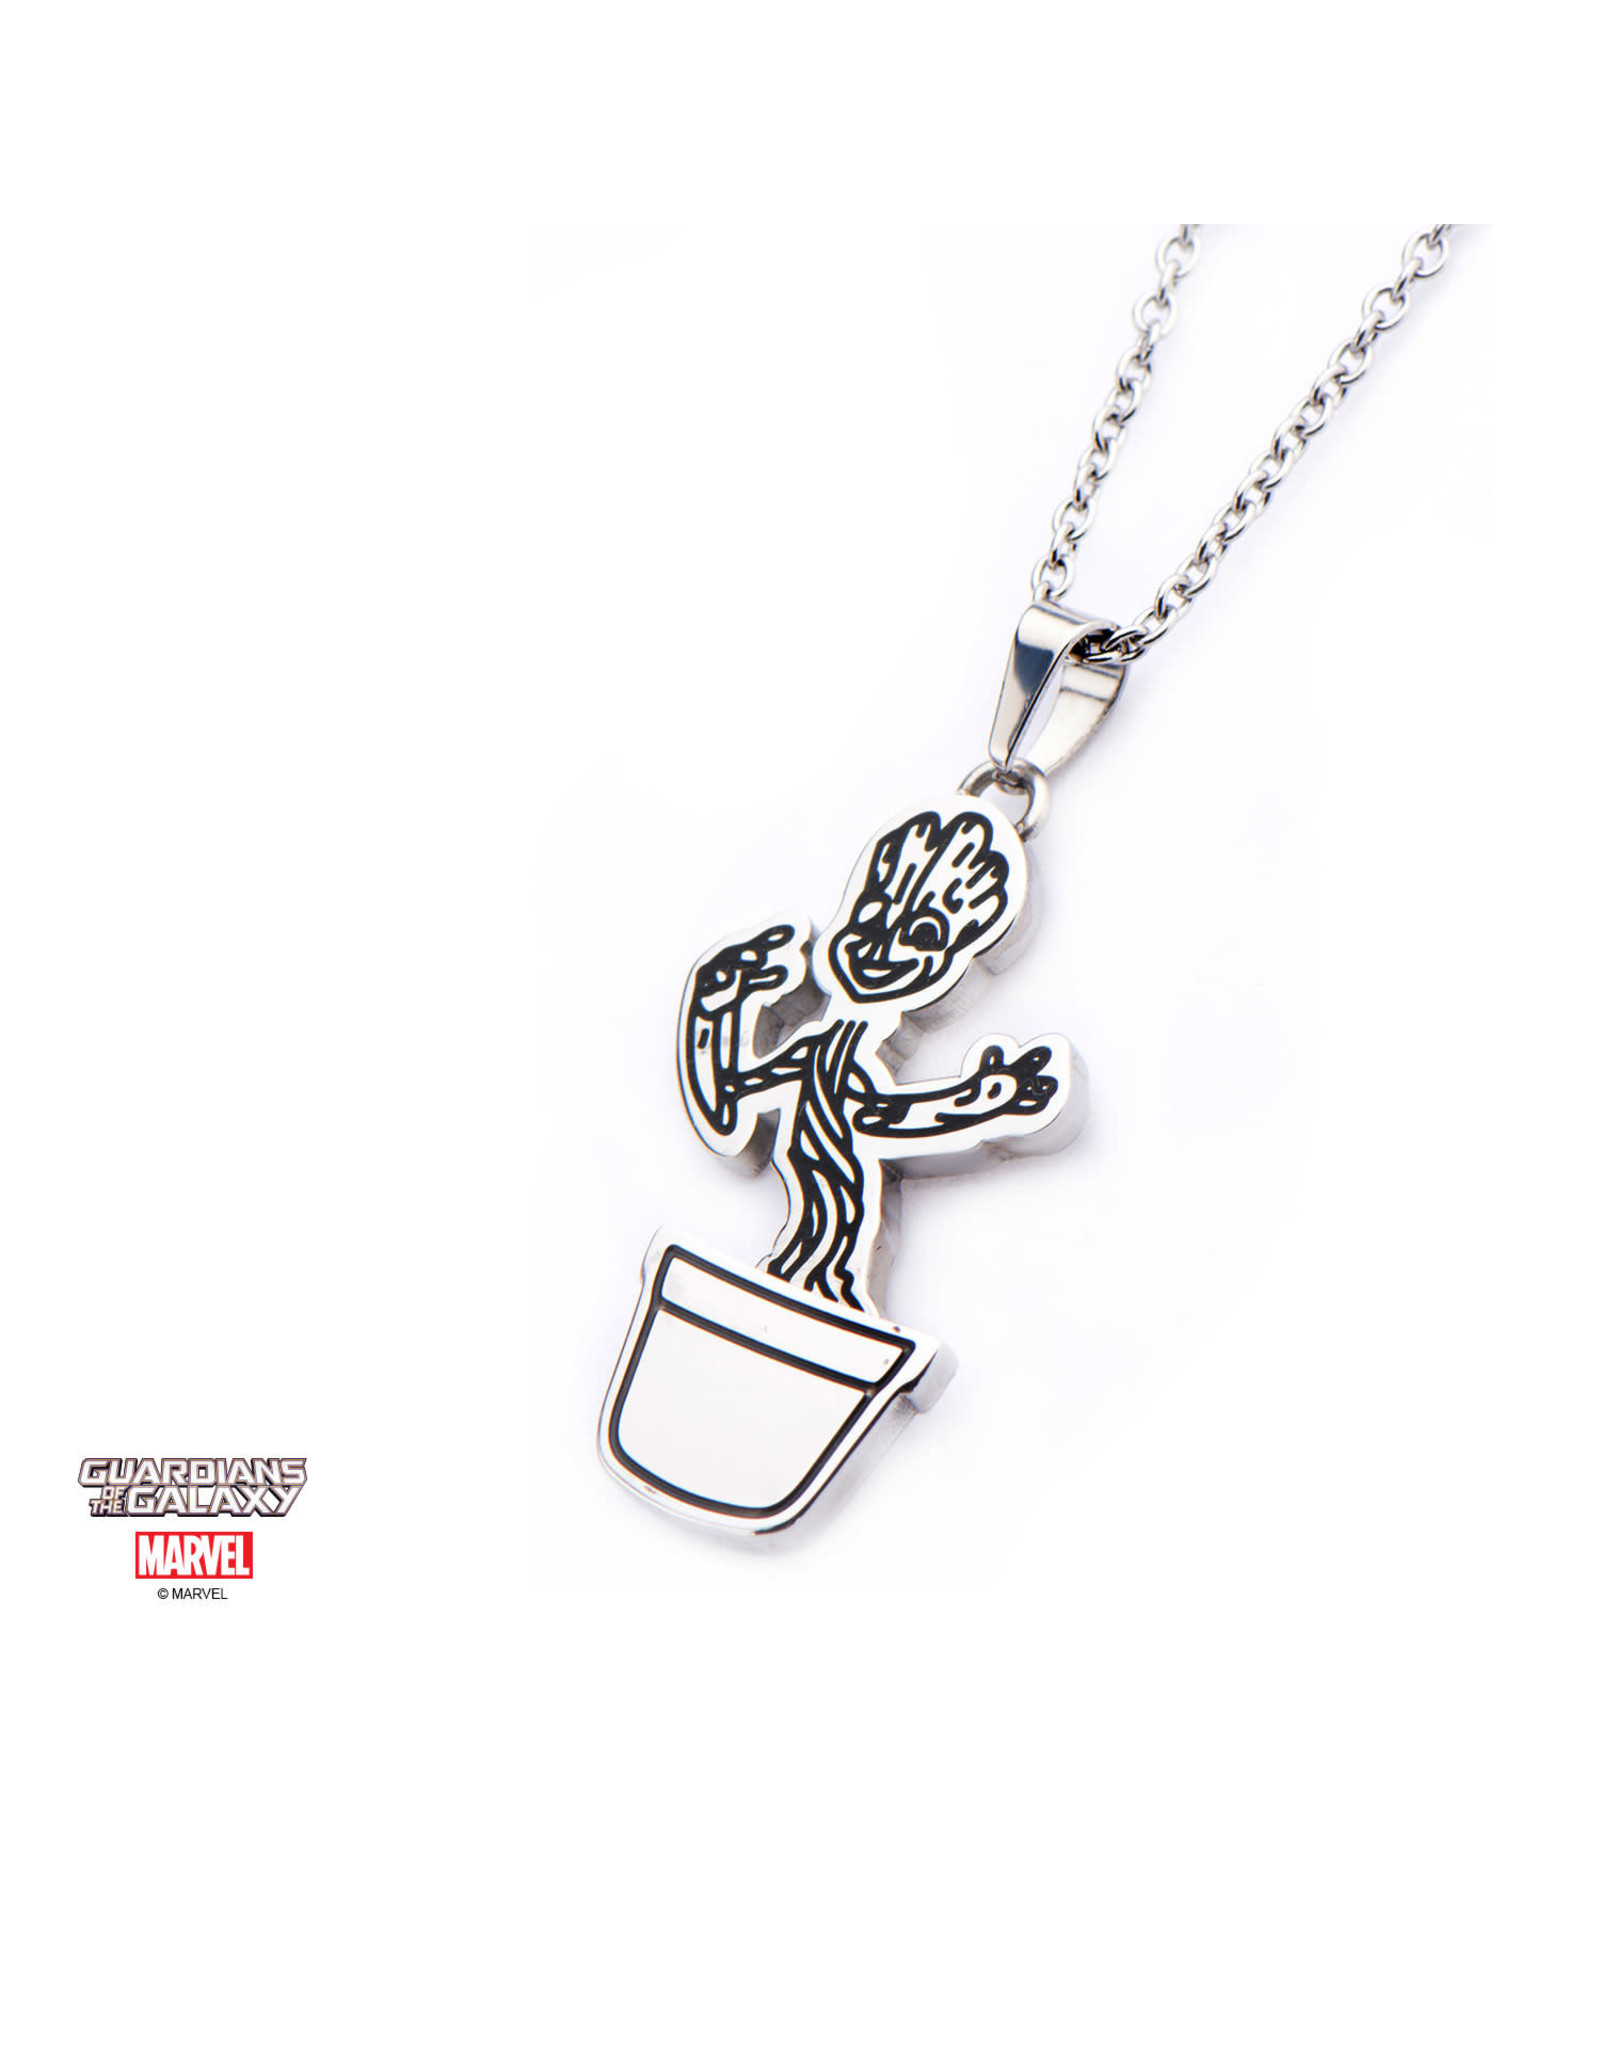 GUARDIANS OF THE GALAXY - Groot Pendant with Chain